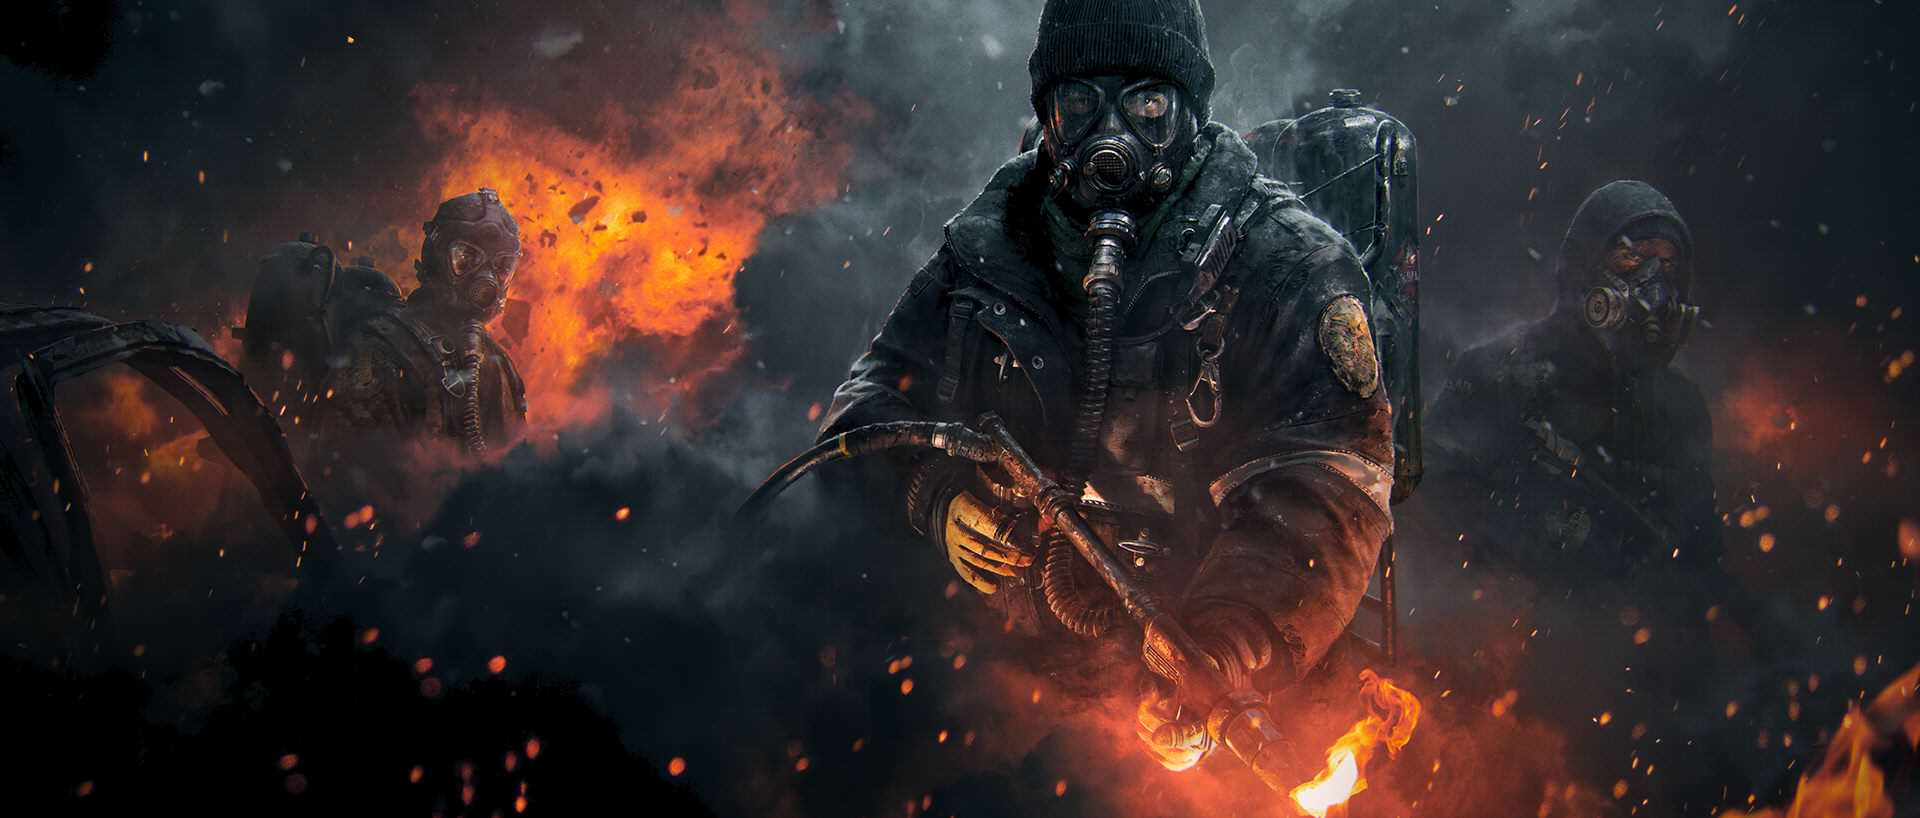 the division the cleaners artwork The Division Datamined To Reveal All Kinds Of New Info